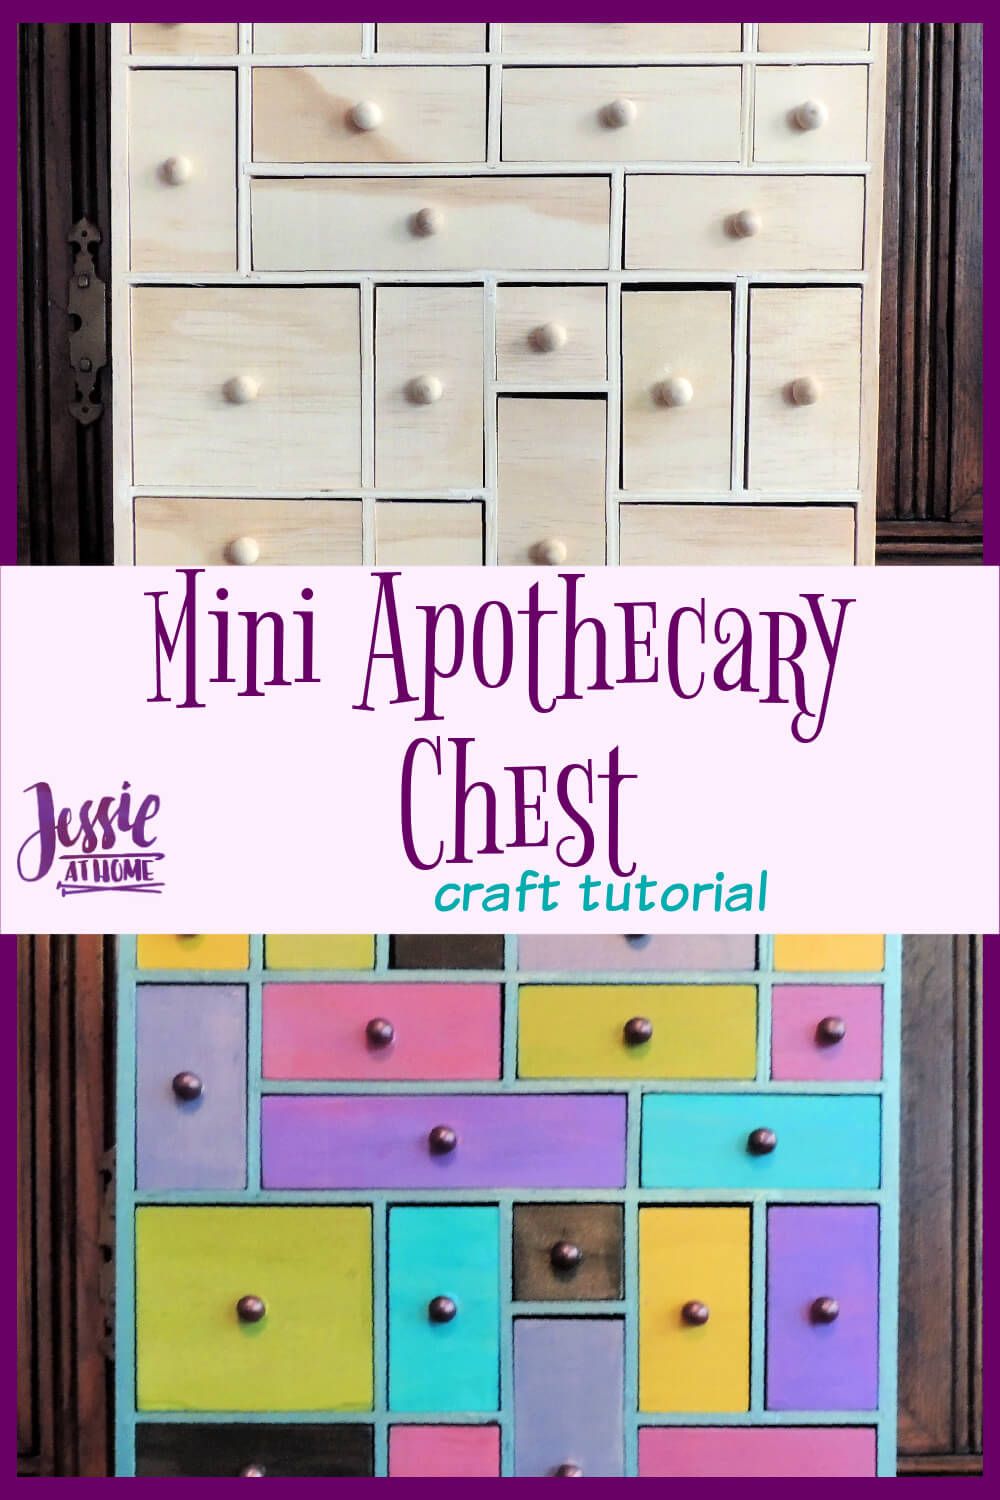 Mini Apothecary Chest - keep your knick-knacks organized in a pretty way